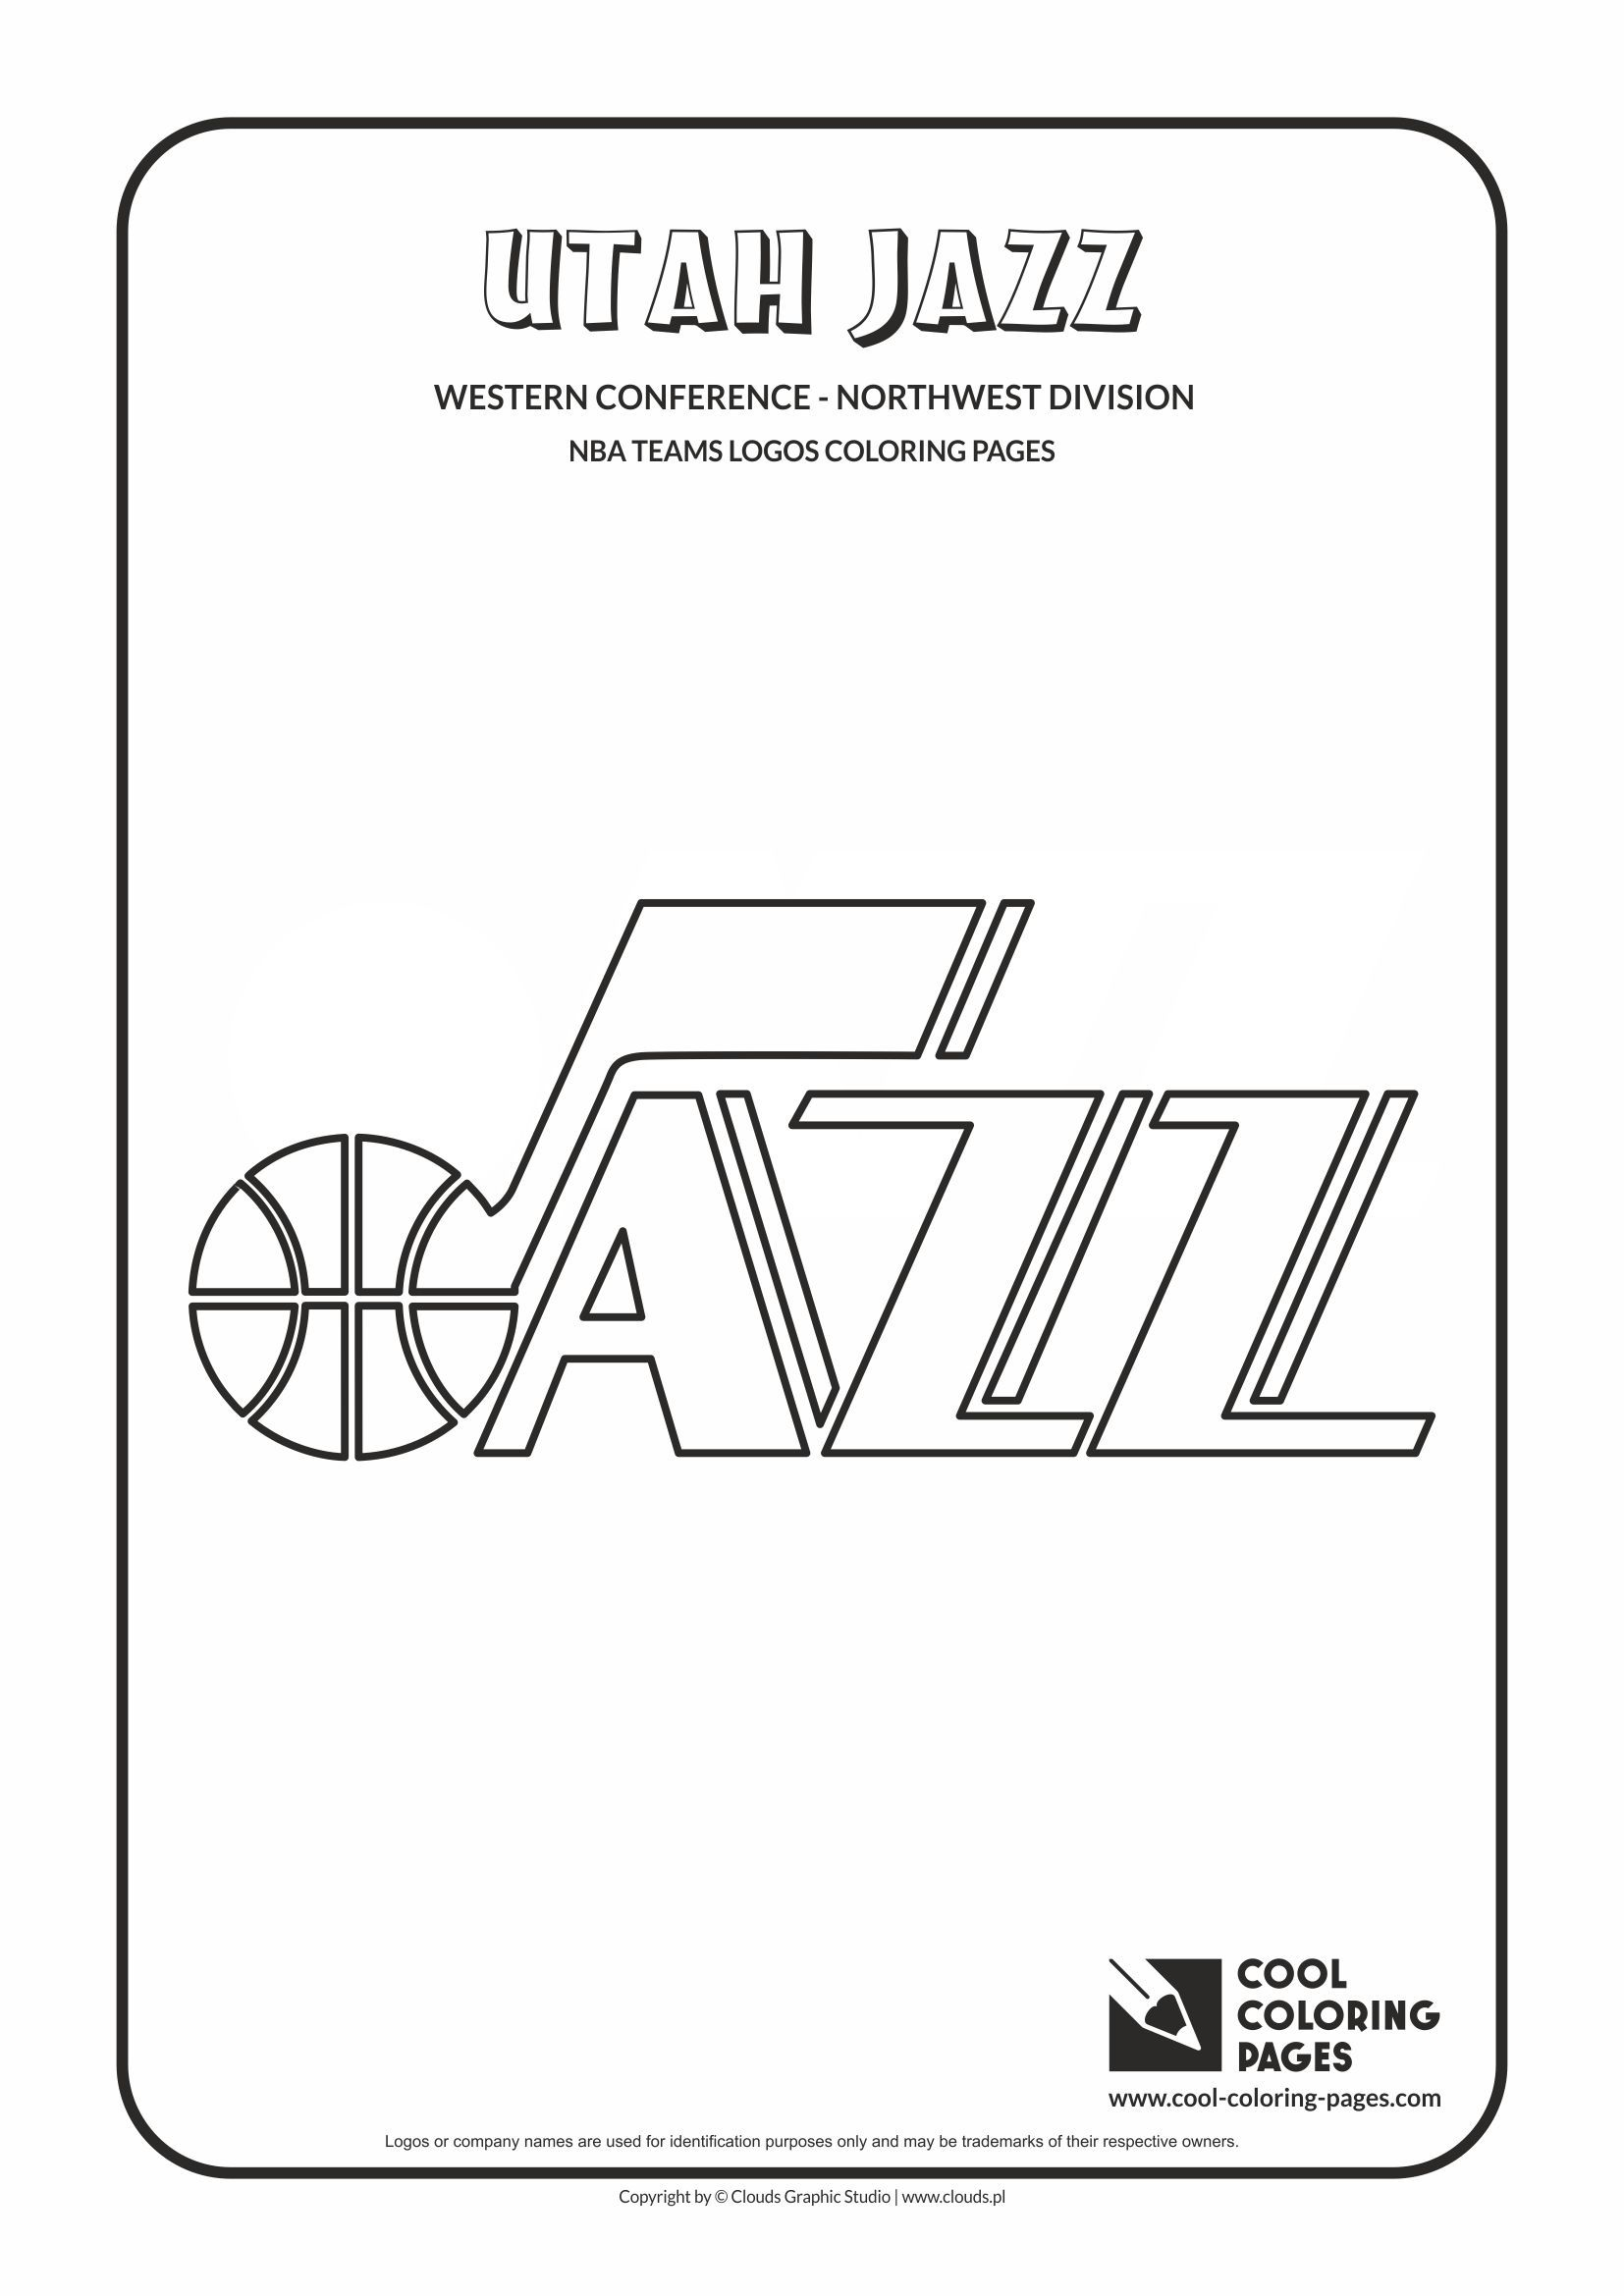 cool coloring pages nba basketball clubs logos western conference